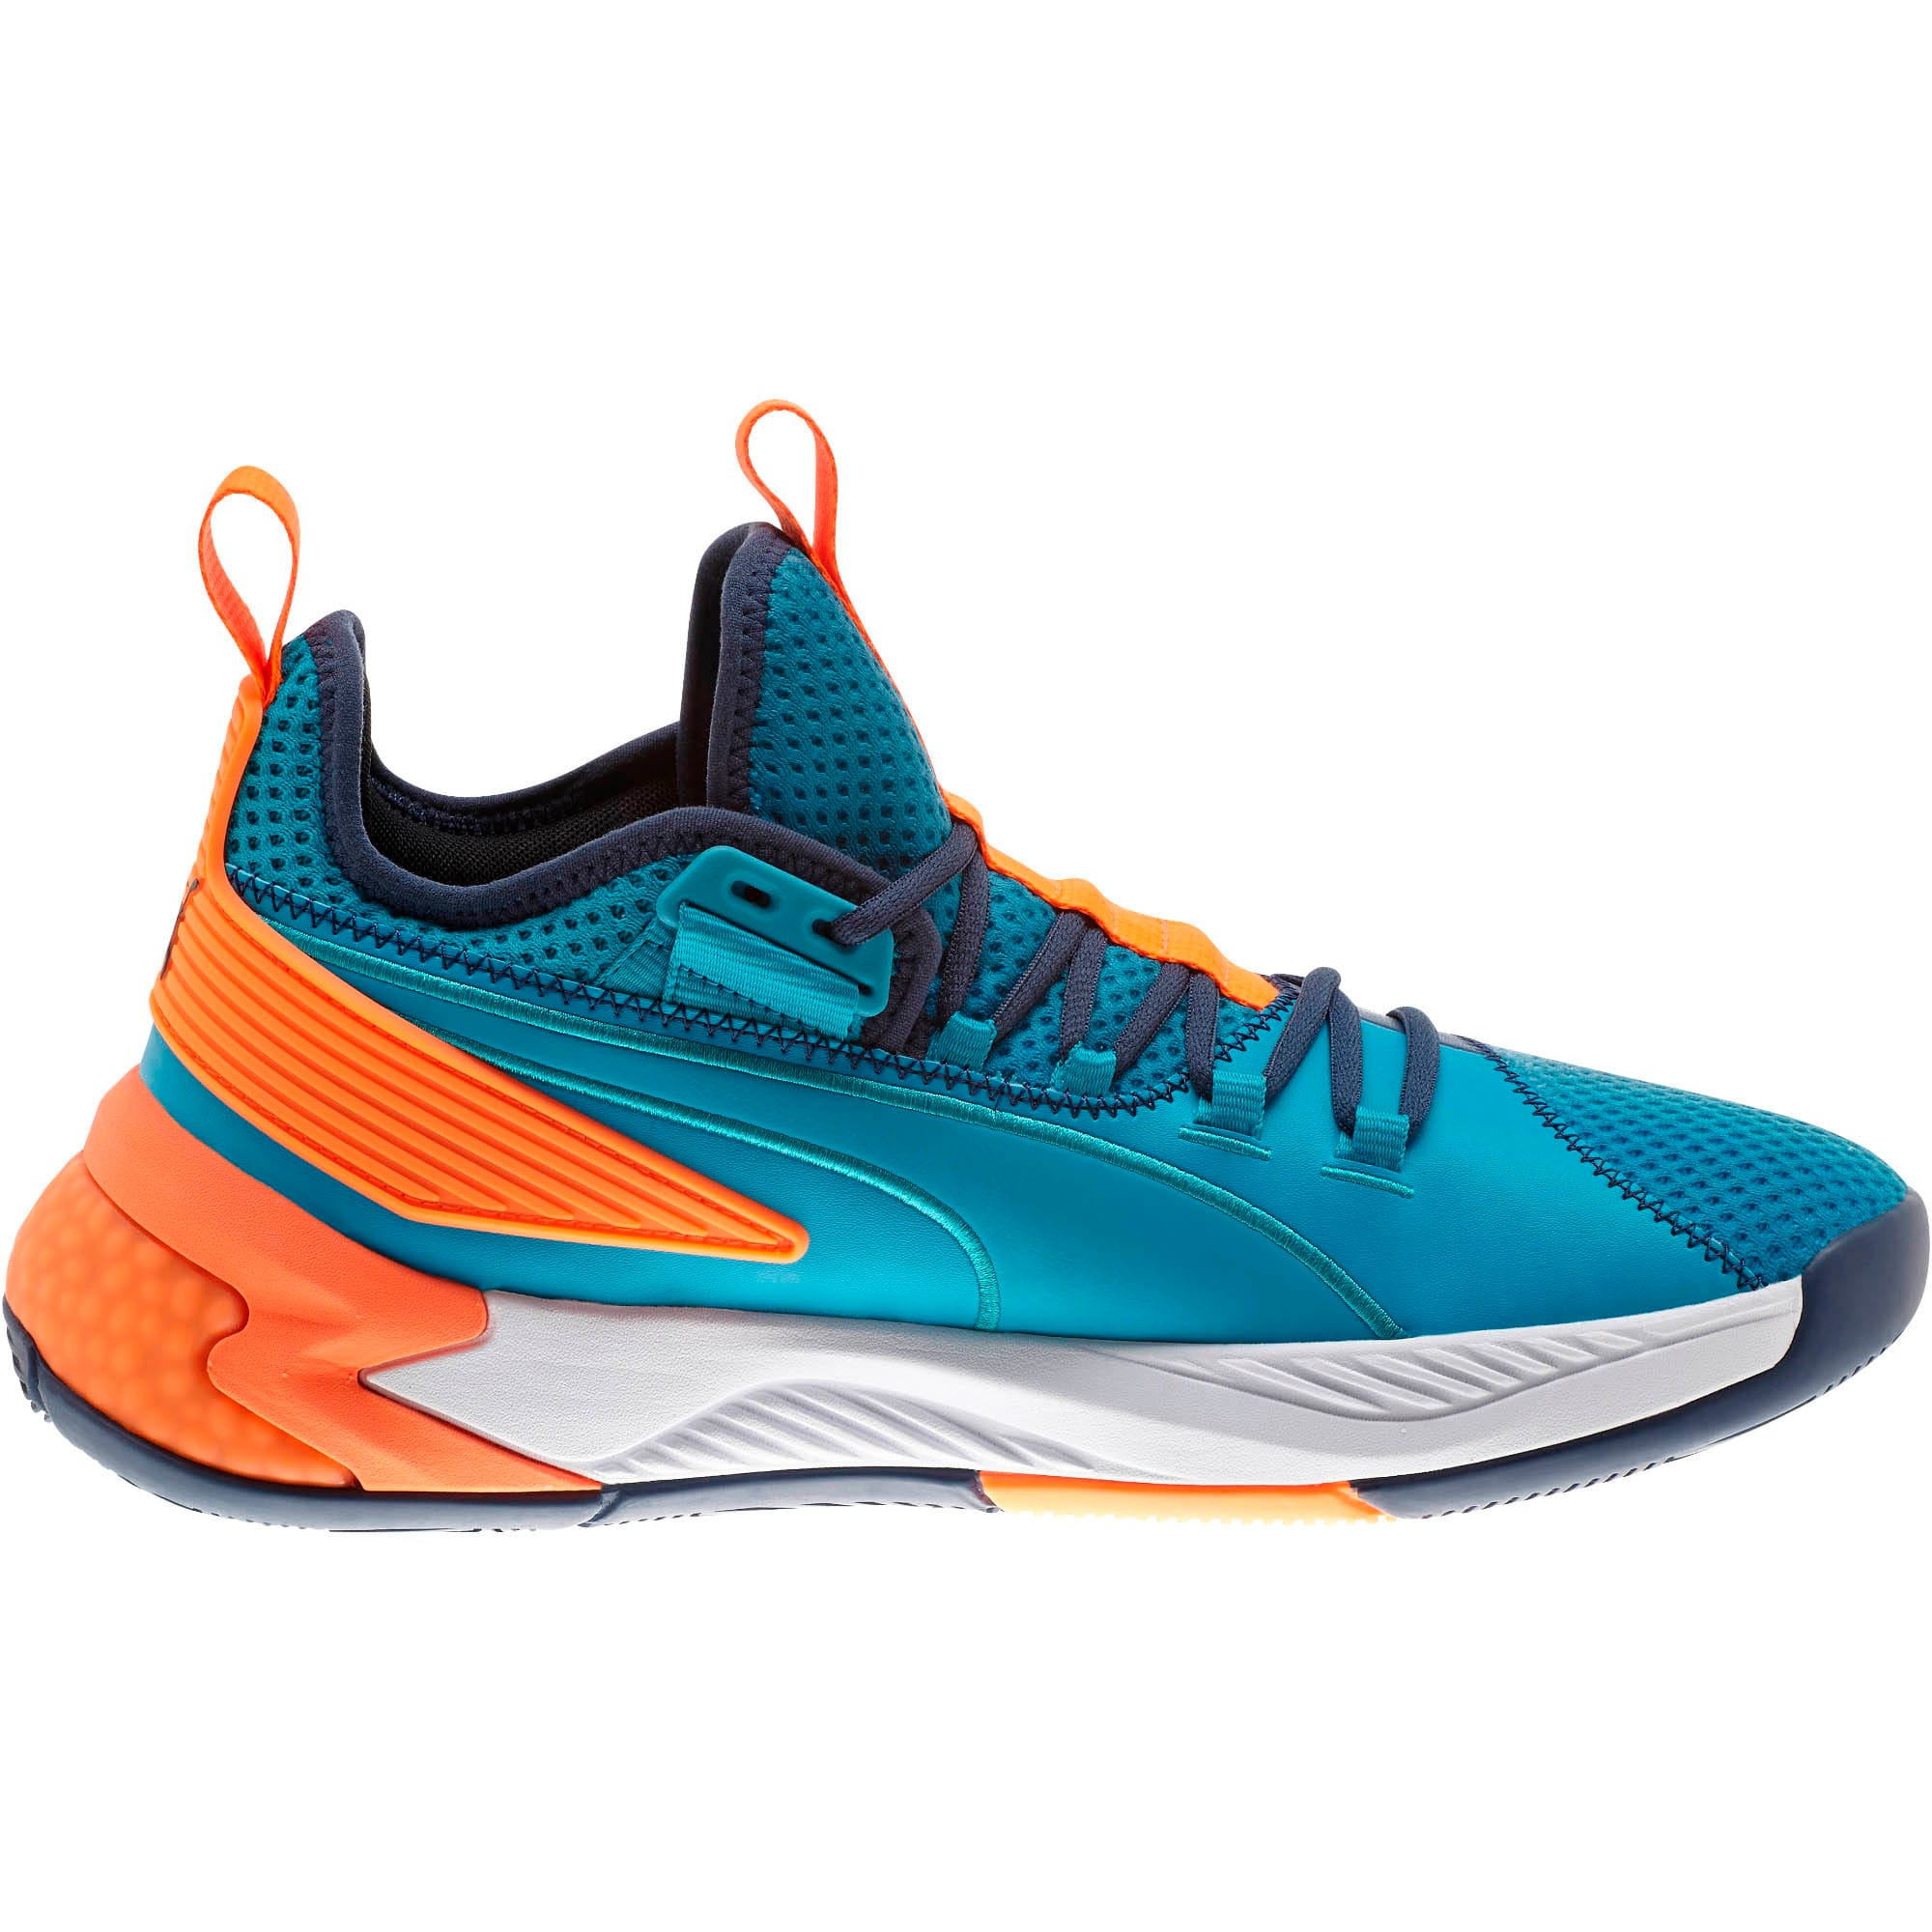 Thumbnail 5 of Uproar Charlotte ASG Fade Basketball Shoes, Orange- PURPLE, medium